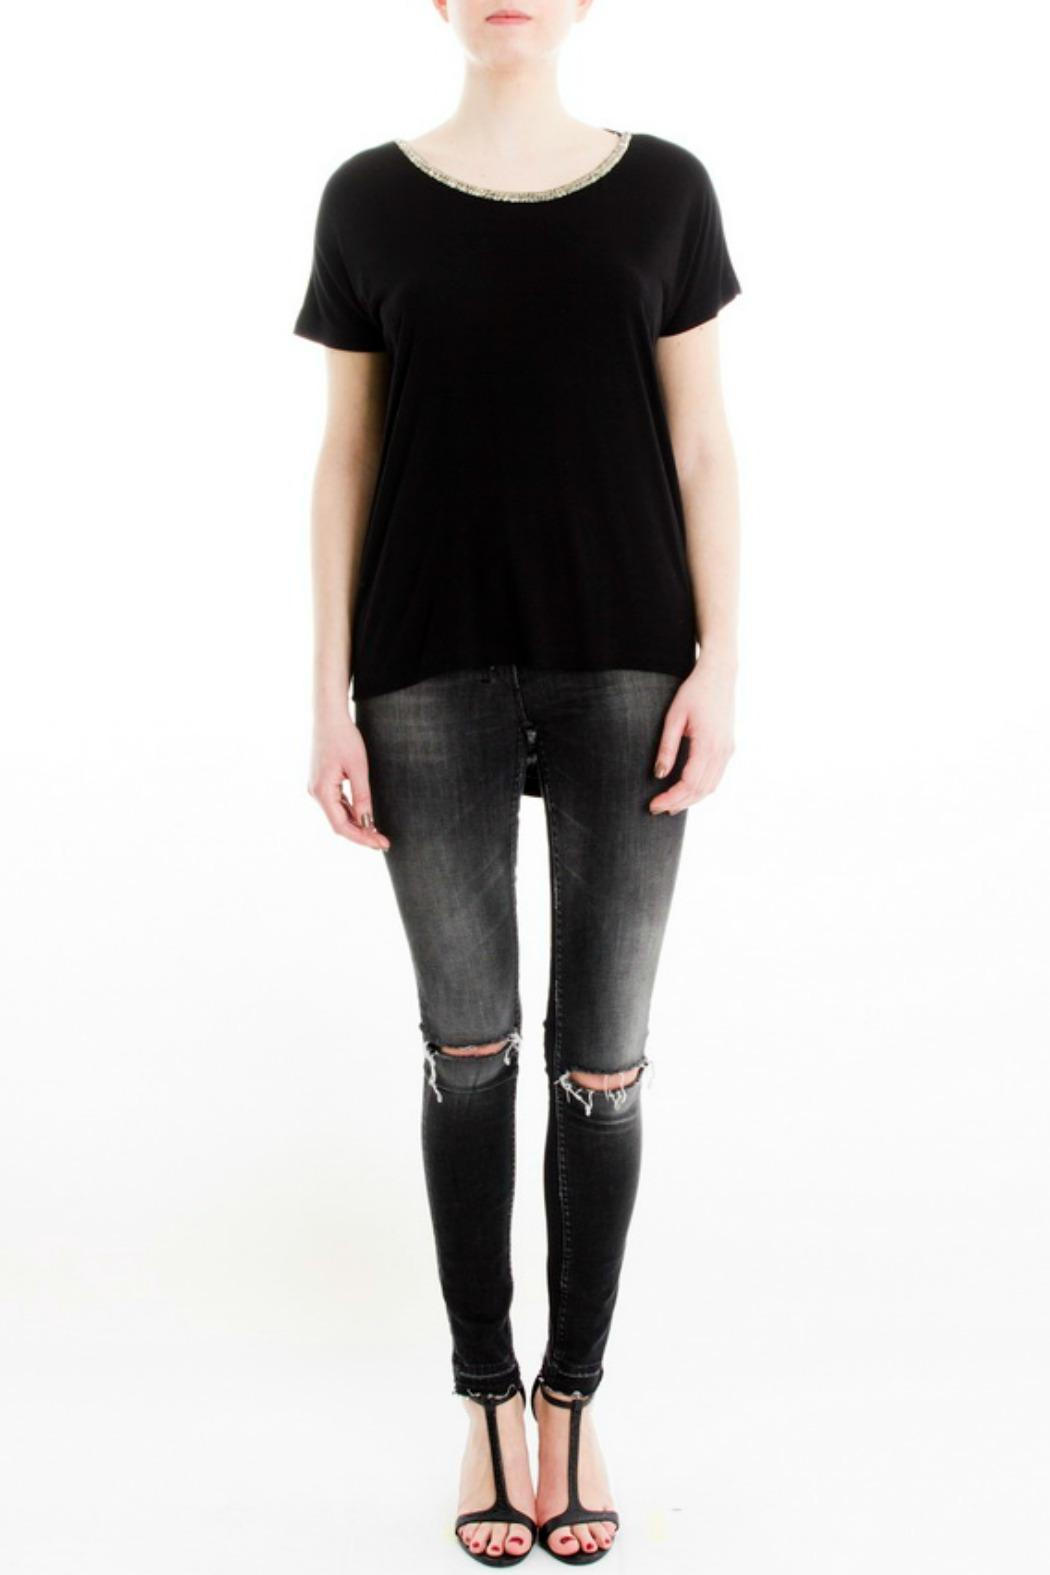 Religion Gloomy Tee From Virginia By Misguided Angels